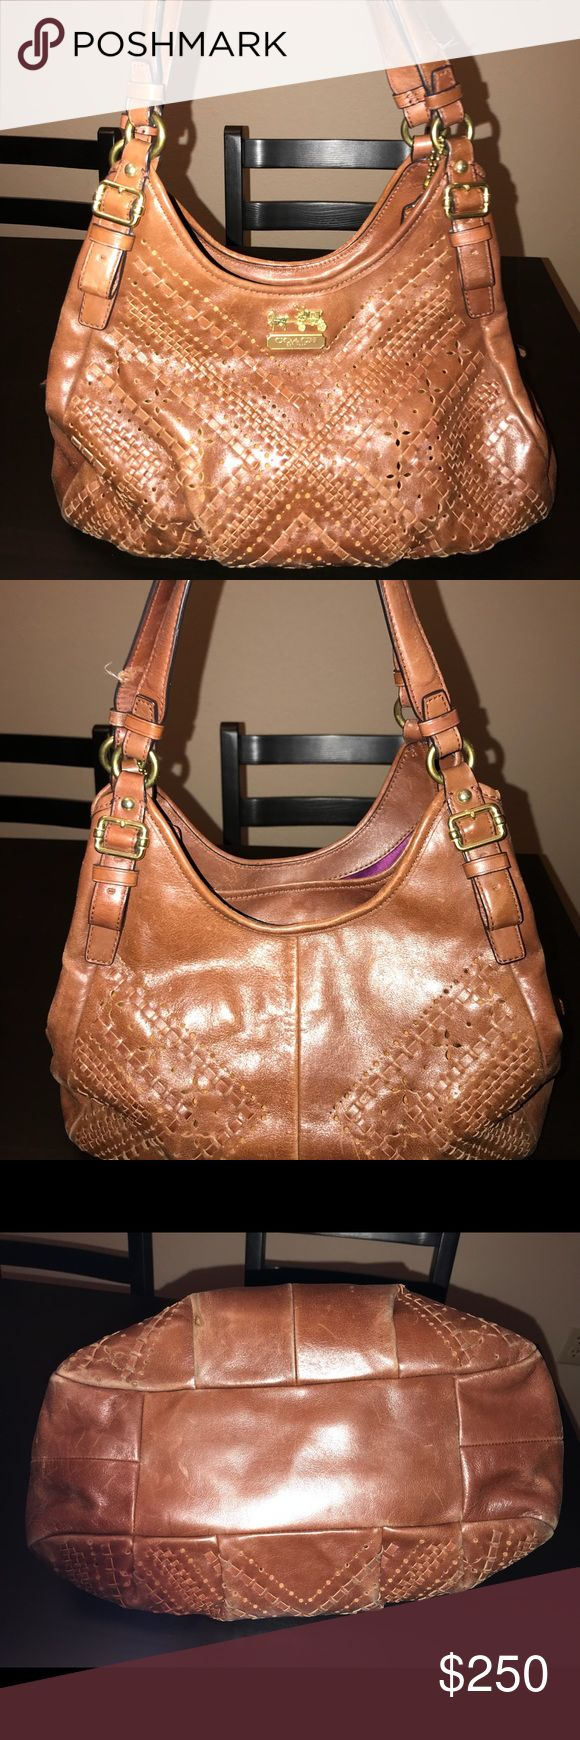 Coach Purse Brown leather Coach purse. 100% authentic. Original price: $550. Have not used in a couple years. Normal wear and tear. Coach Bags Shoulder Bags